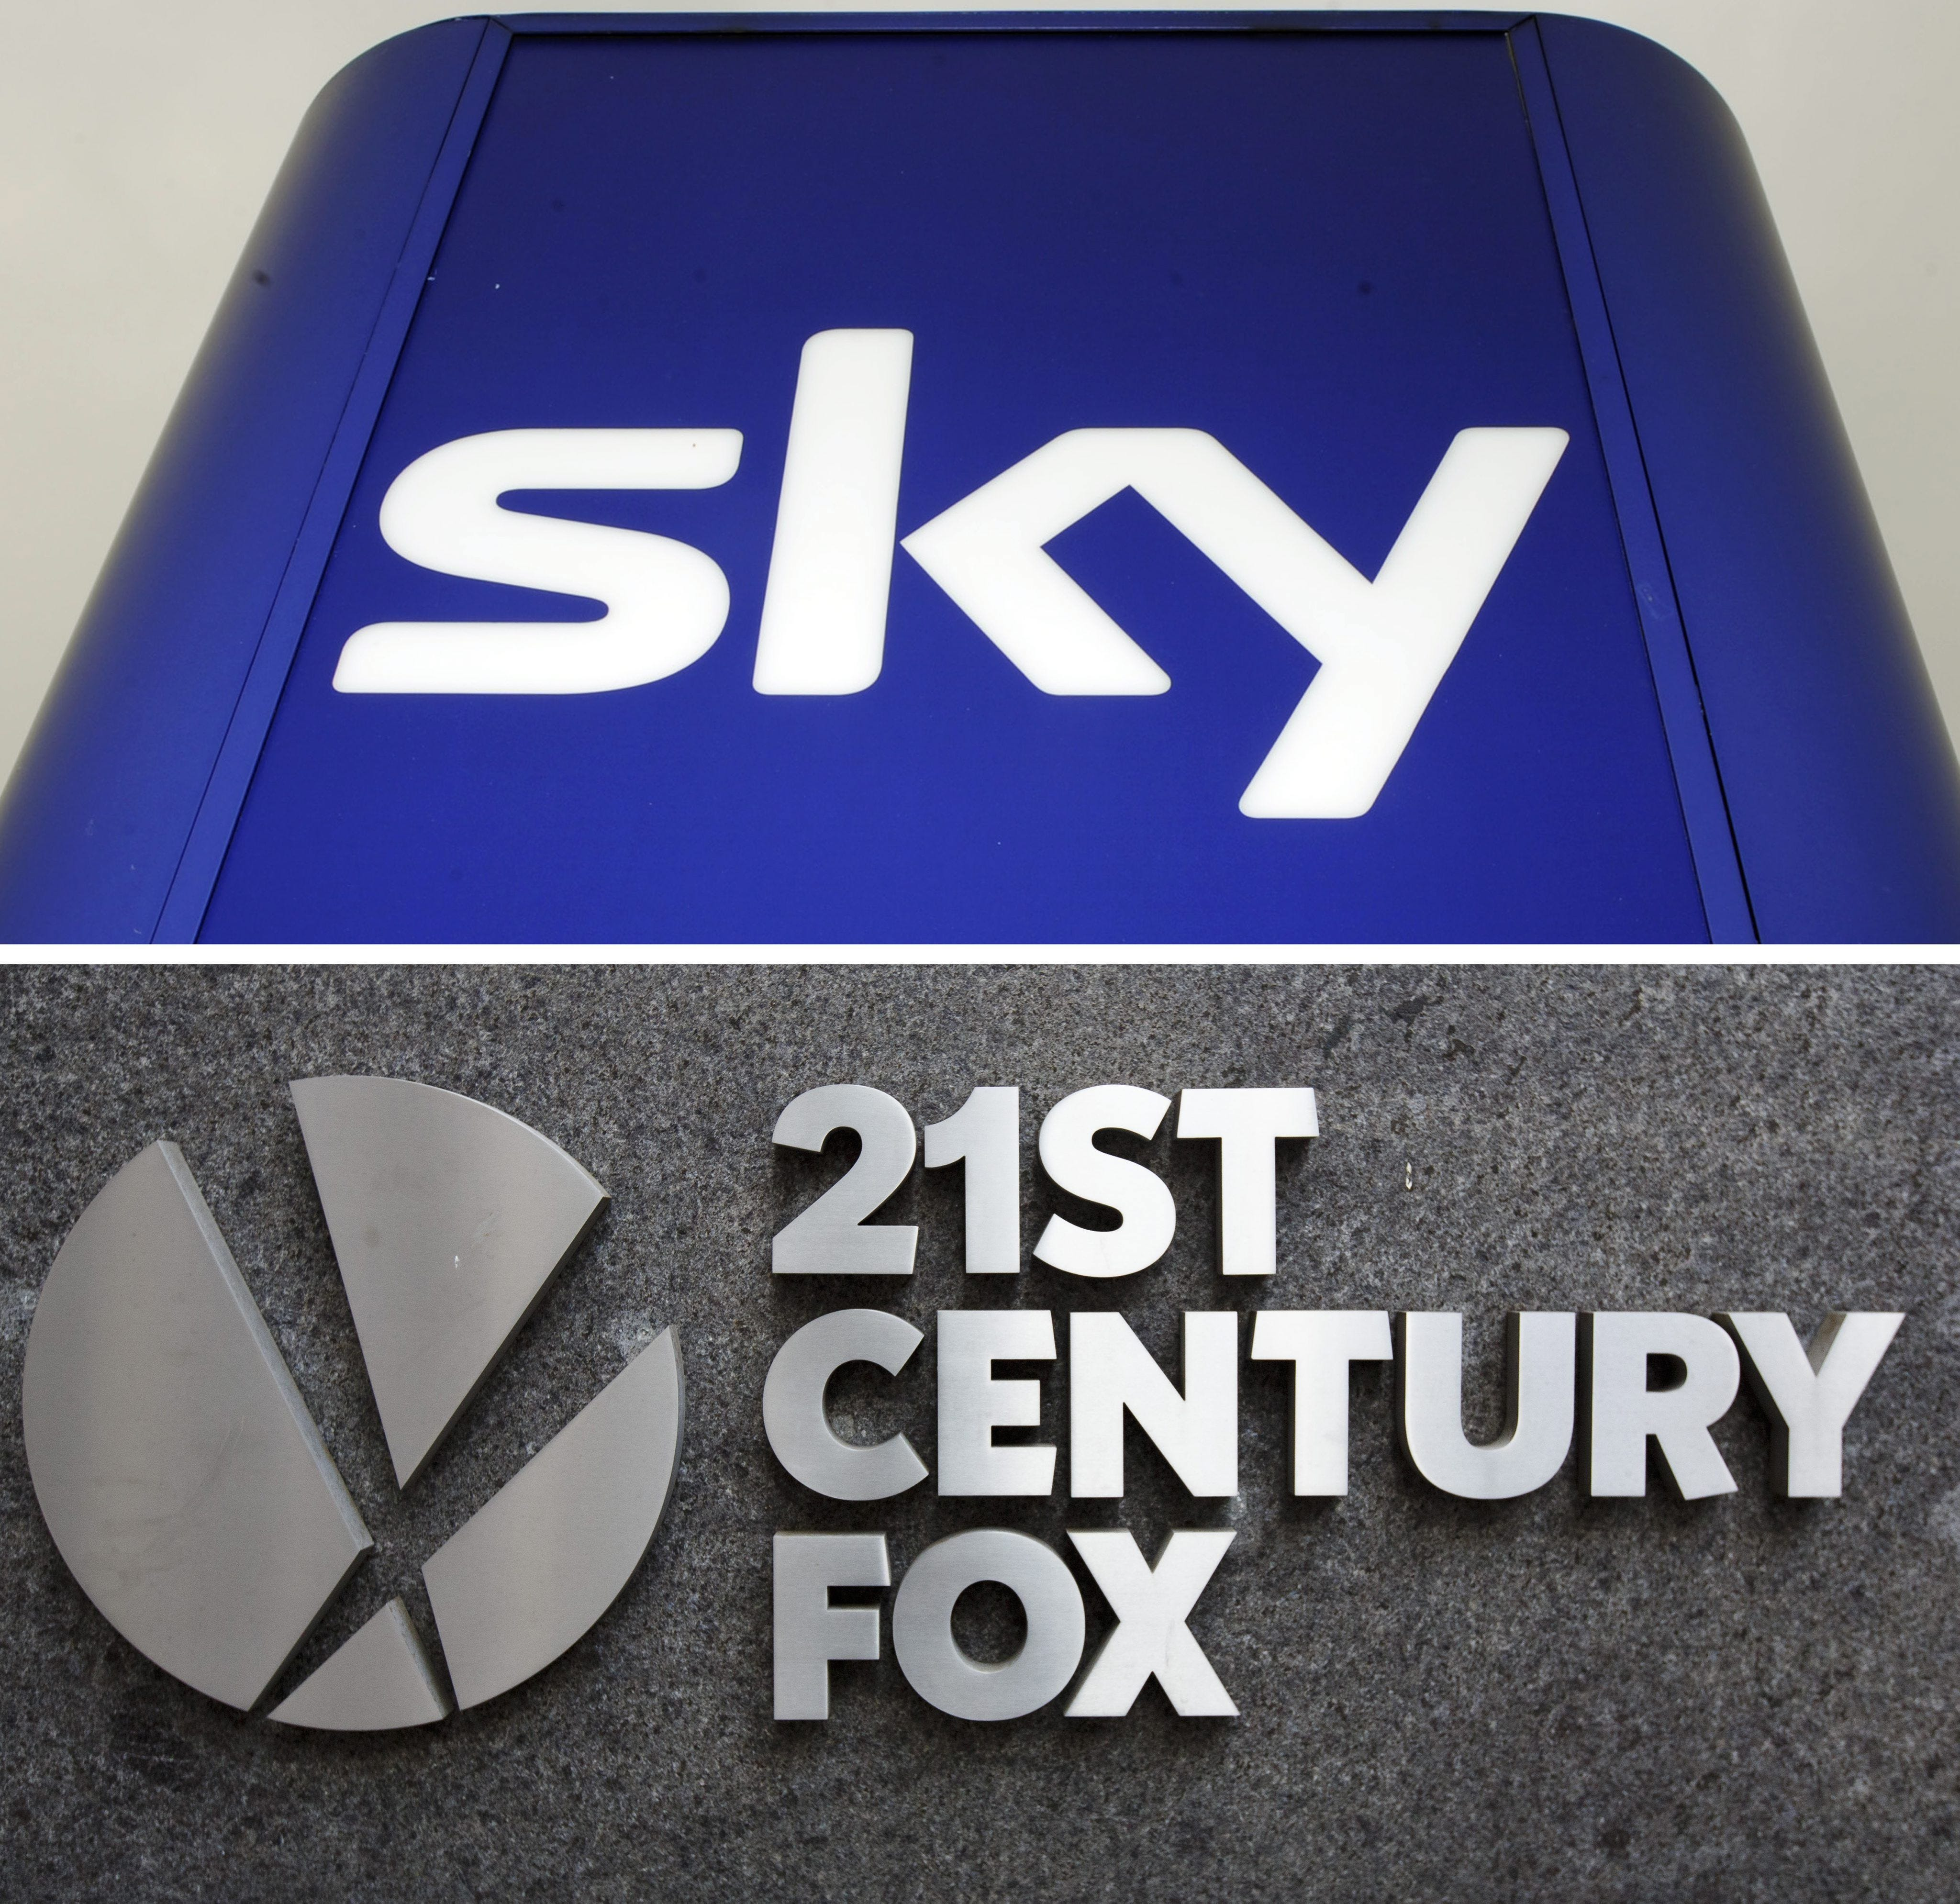 Fox's takeover of Sky may get additional U.K. review